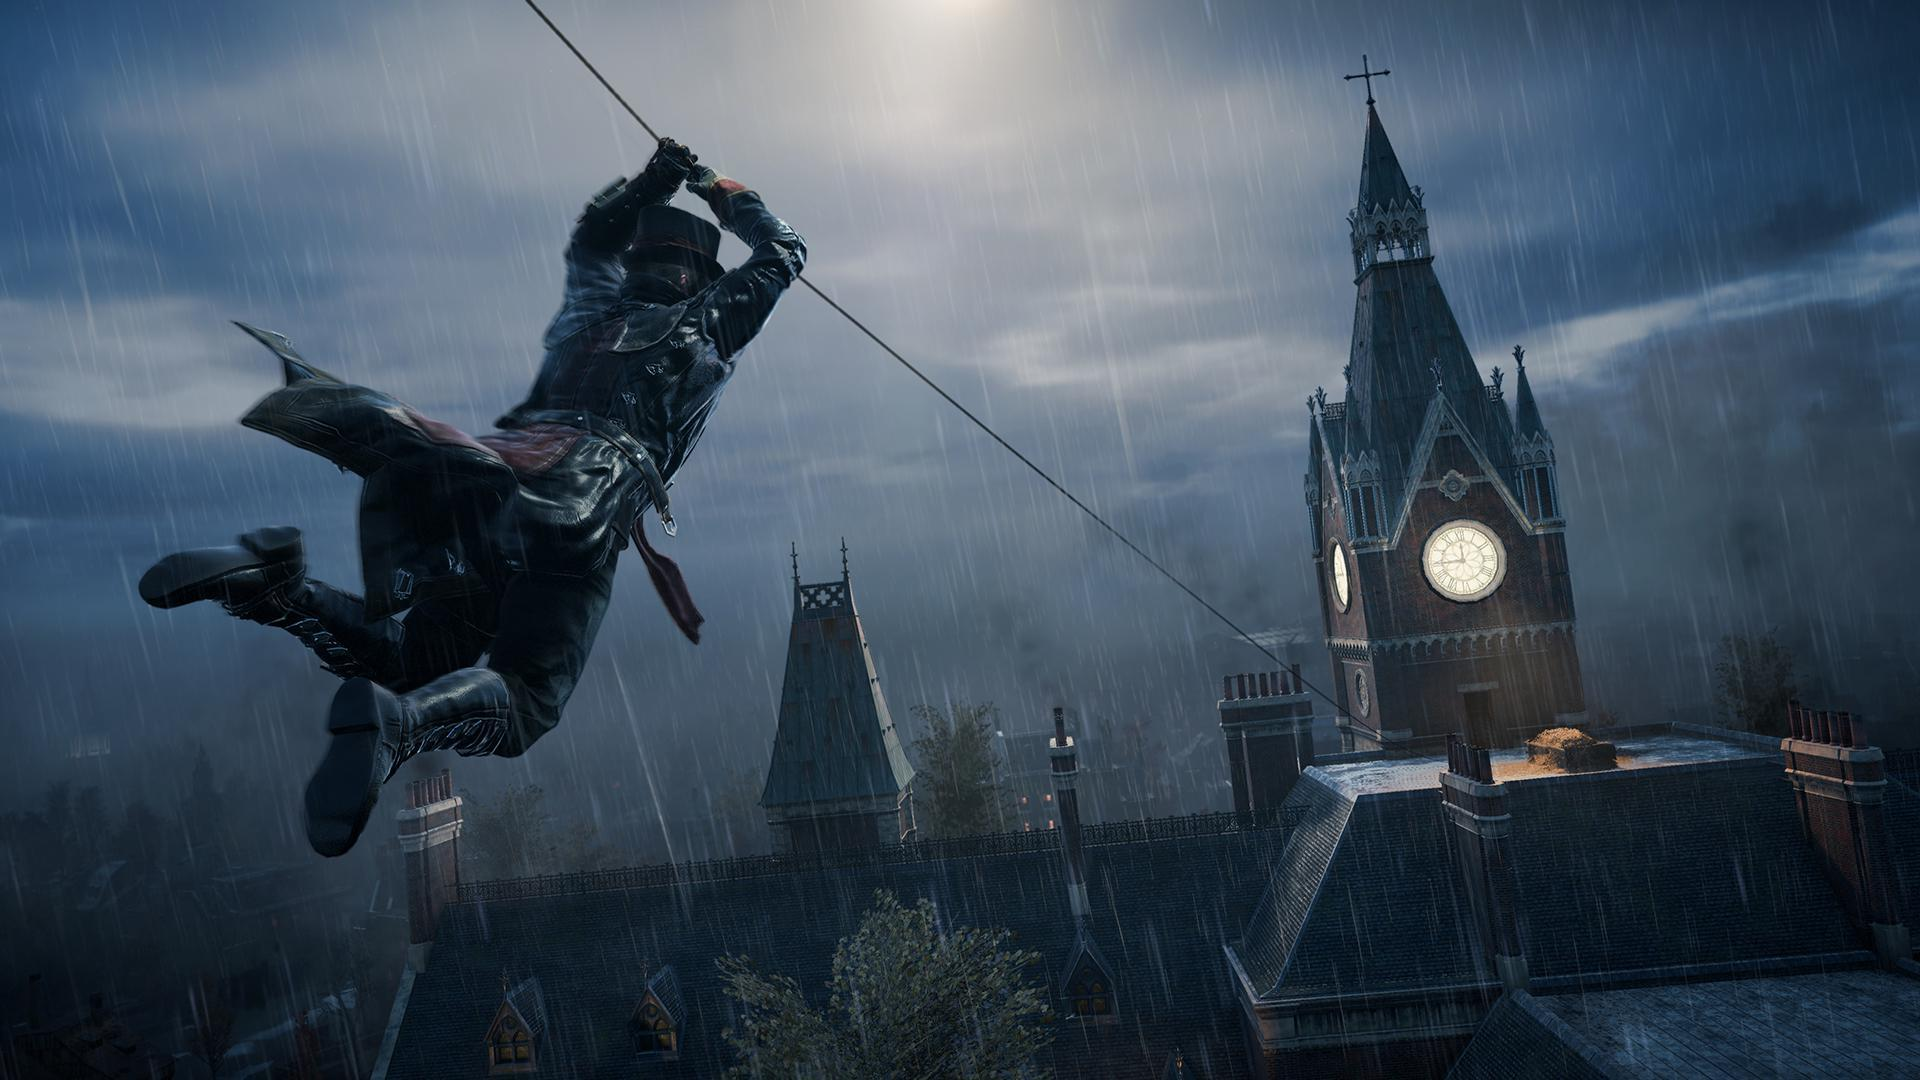 Assassin's Creed Syndicate in Assassin's Creed Games, Ranked From Worst to Best - 1